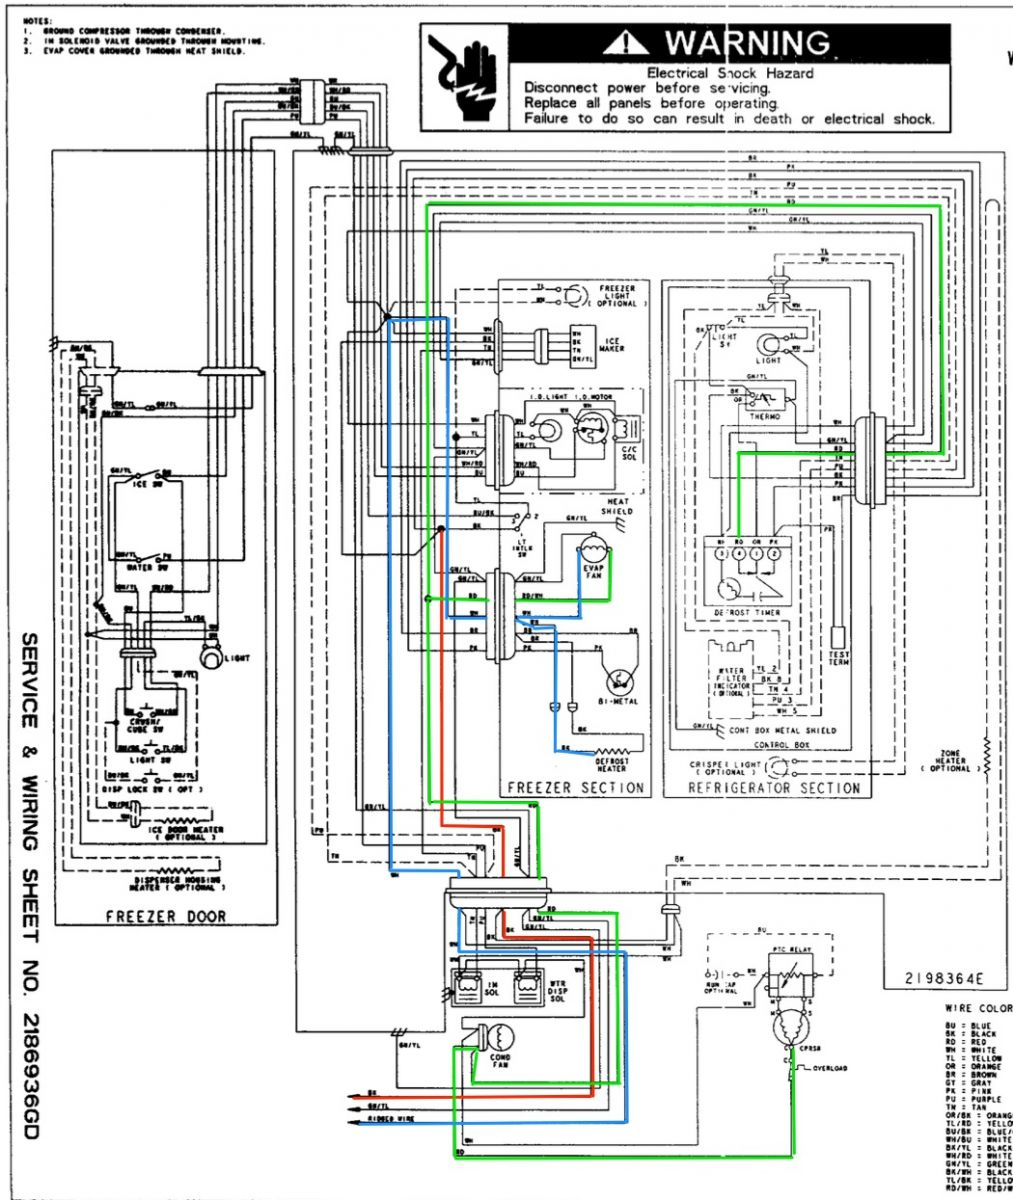 gallery_4_4_346879 whirlpool ed25rfxfw01 refrigerator wiring diagram the wiring diagram refrigeration compressor at webbmarketing.co